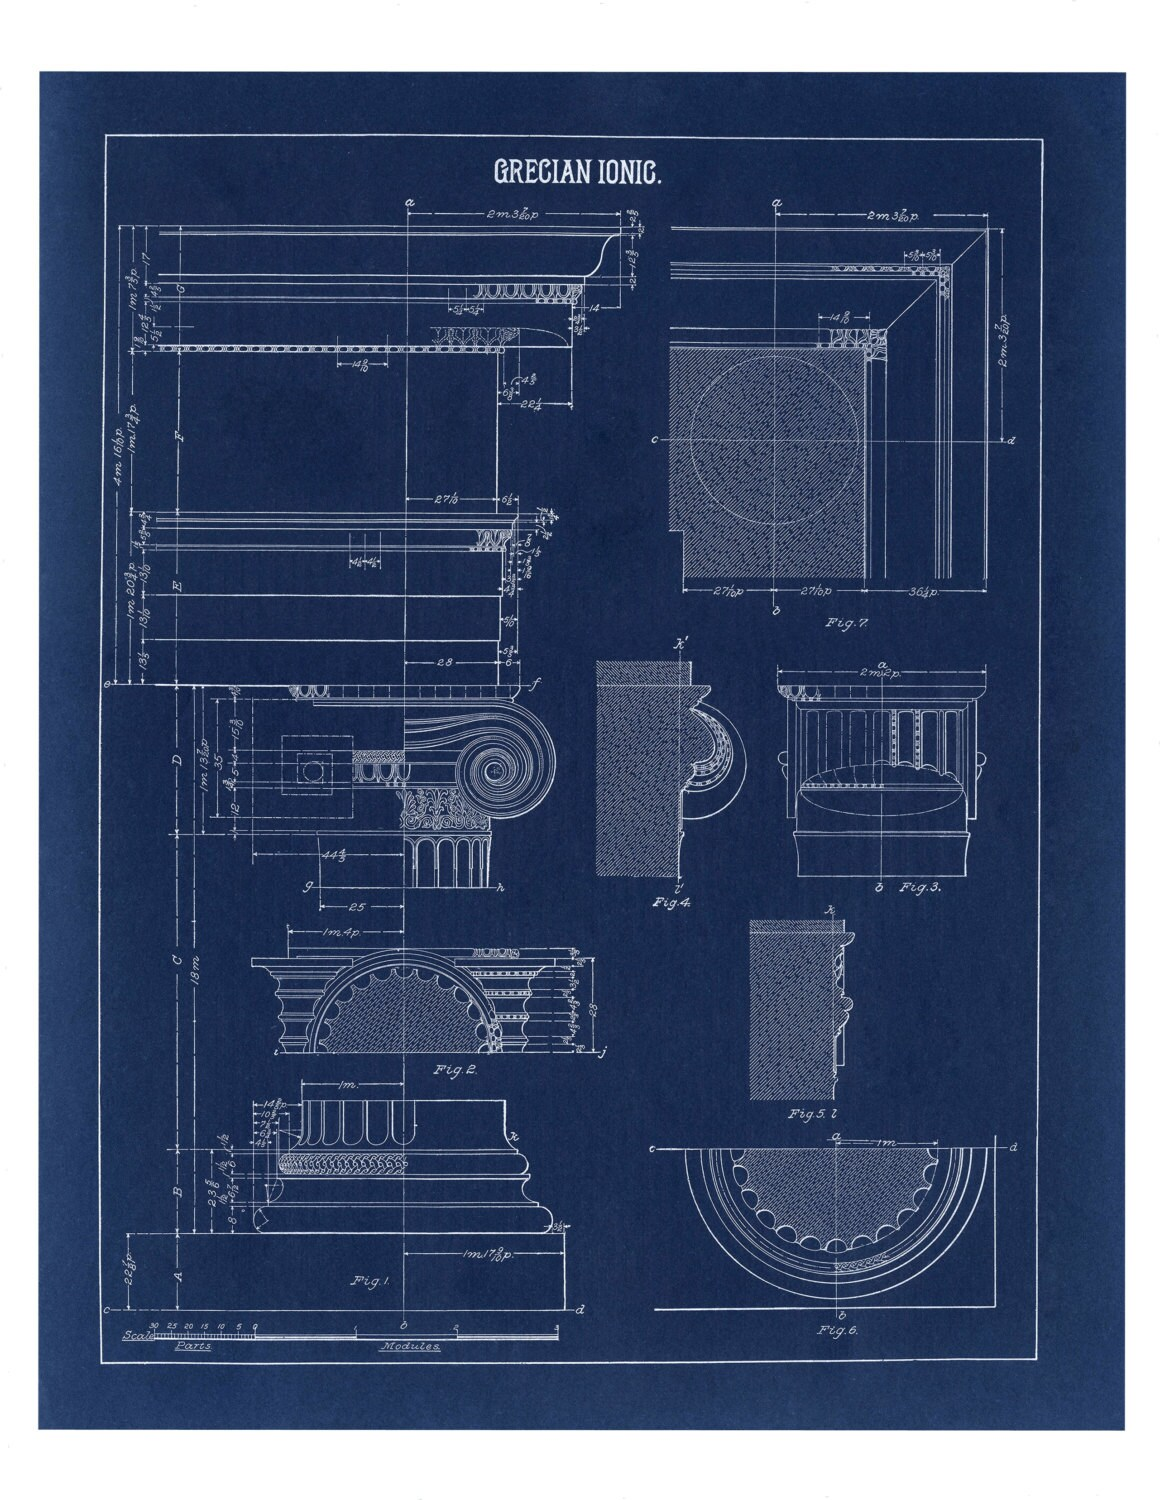 Blueprint wall decor greek ionic column drawing architecture for Architecture blueprint